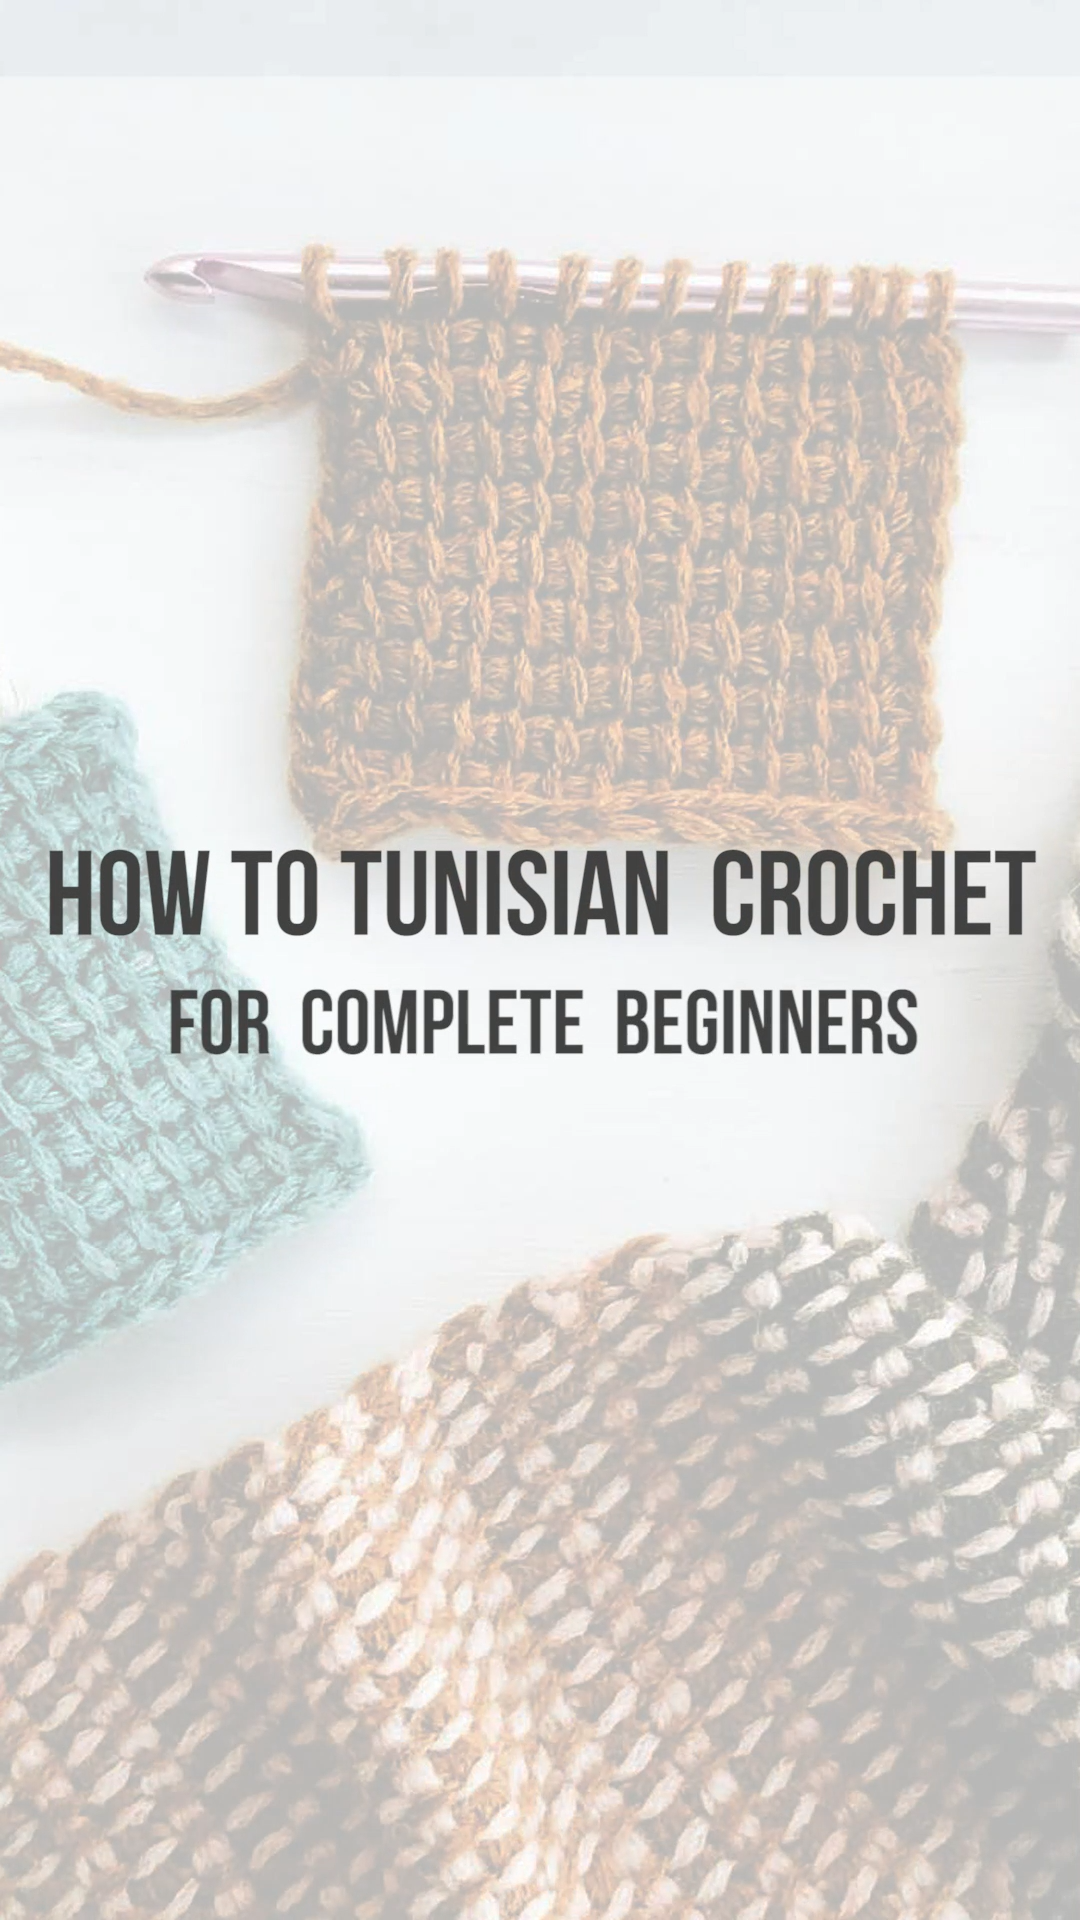 Free beginner-friendly Tunisian crochet video tutorial from Make & Do Crew - in this video tutorial, you will learn all the basics of Tunisian crochet, like how to start, what to make, what type of hook to buy, and more. The Tunisian simple stitch is perfect for beginners to start with. Includes instructions for right handed and left handed crocheters.   #Beginner #Crochet #started #Tunisian #tutorial #Video